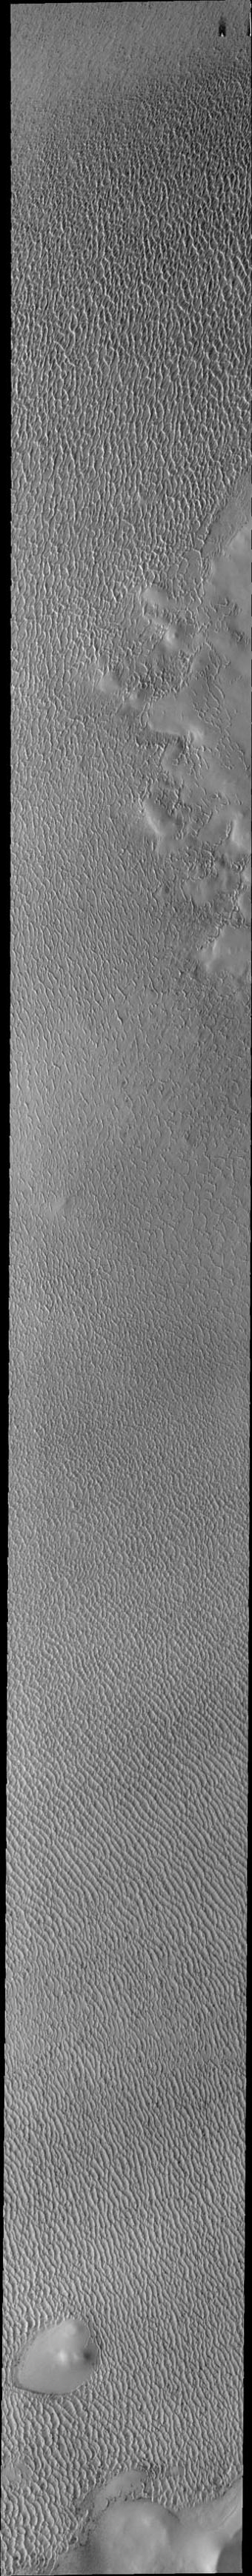 This image captured by NASA's 2001 Mars Odyssey spacecraft of Olympia Undae was collected during north polar spring. The crests of the dunes and other surfaces are light colored, indicative of a frost covering.